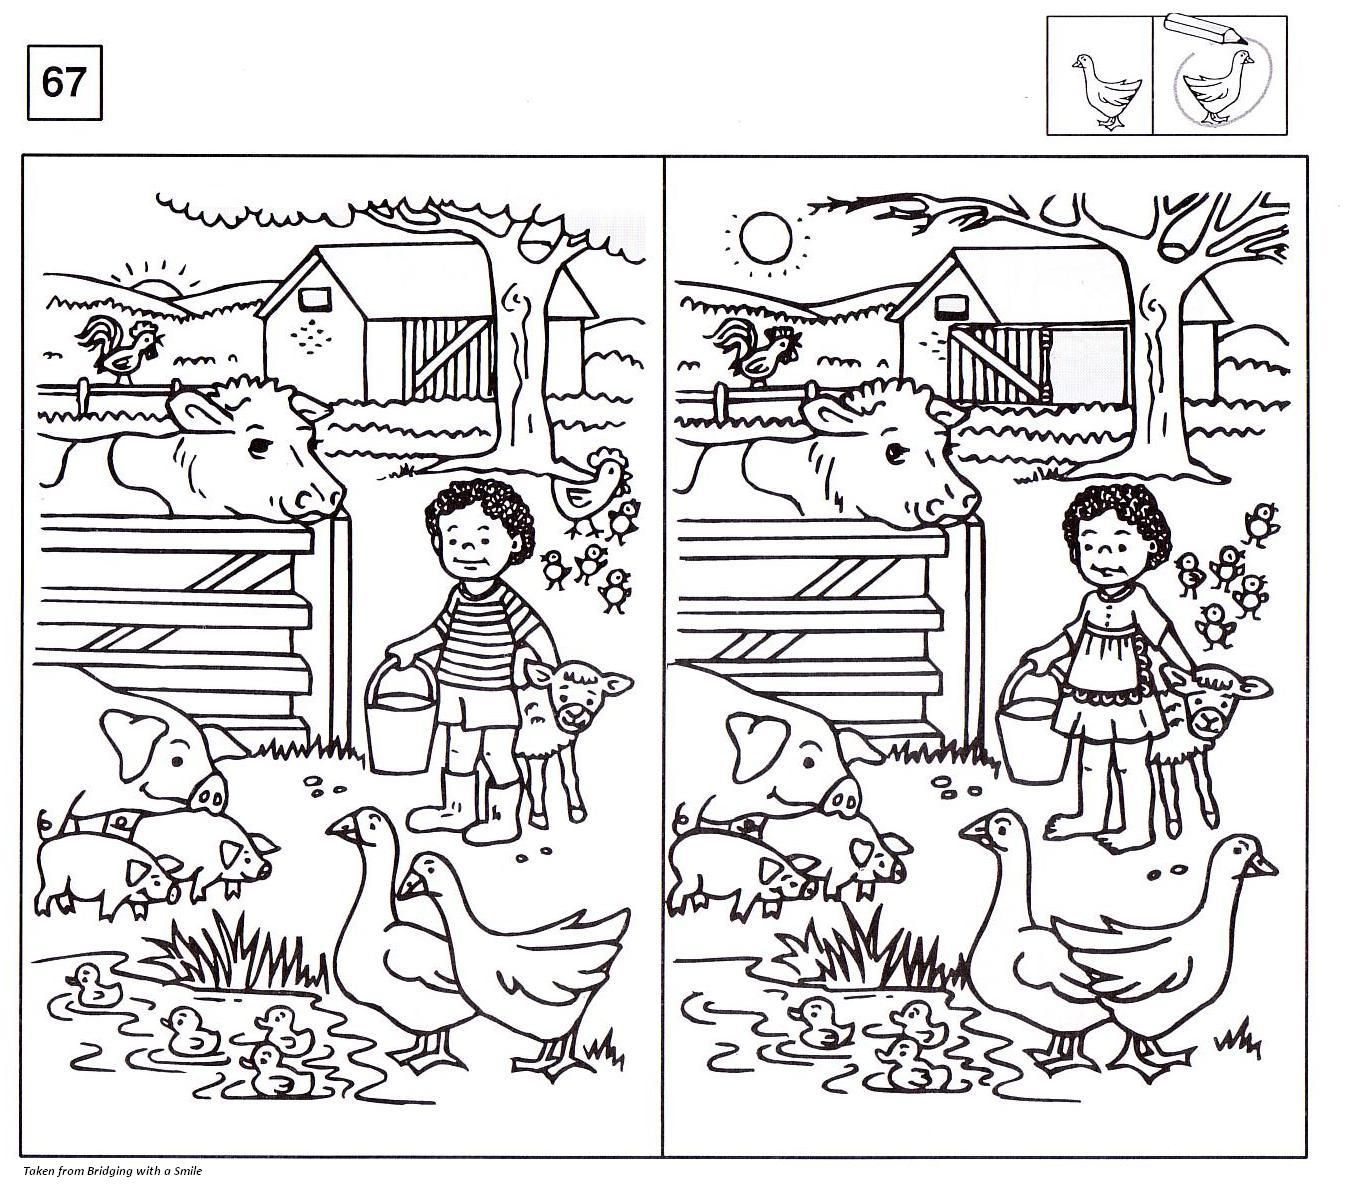 Worksheets Spot The Difference Worksheets 1000 images about spot the difference sheets on pinterest